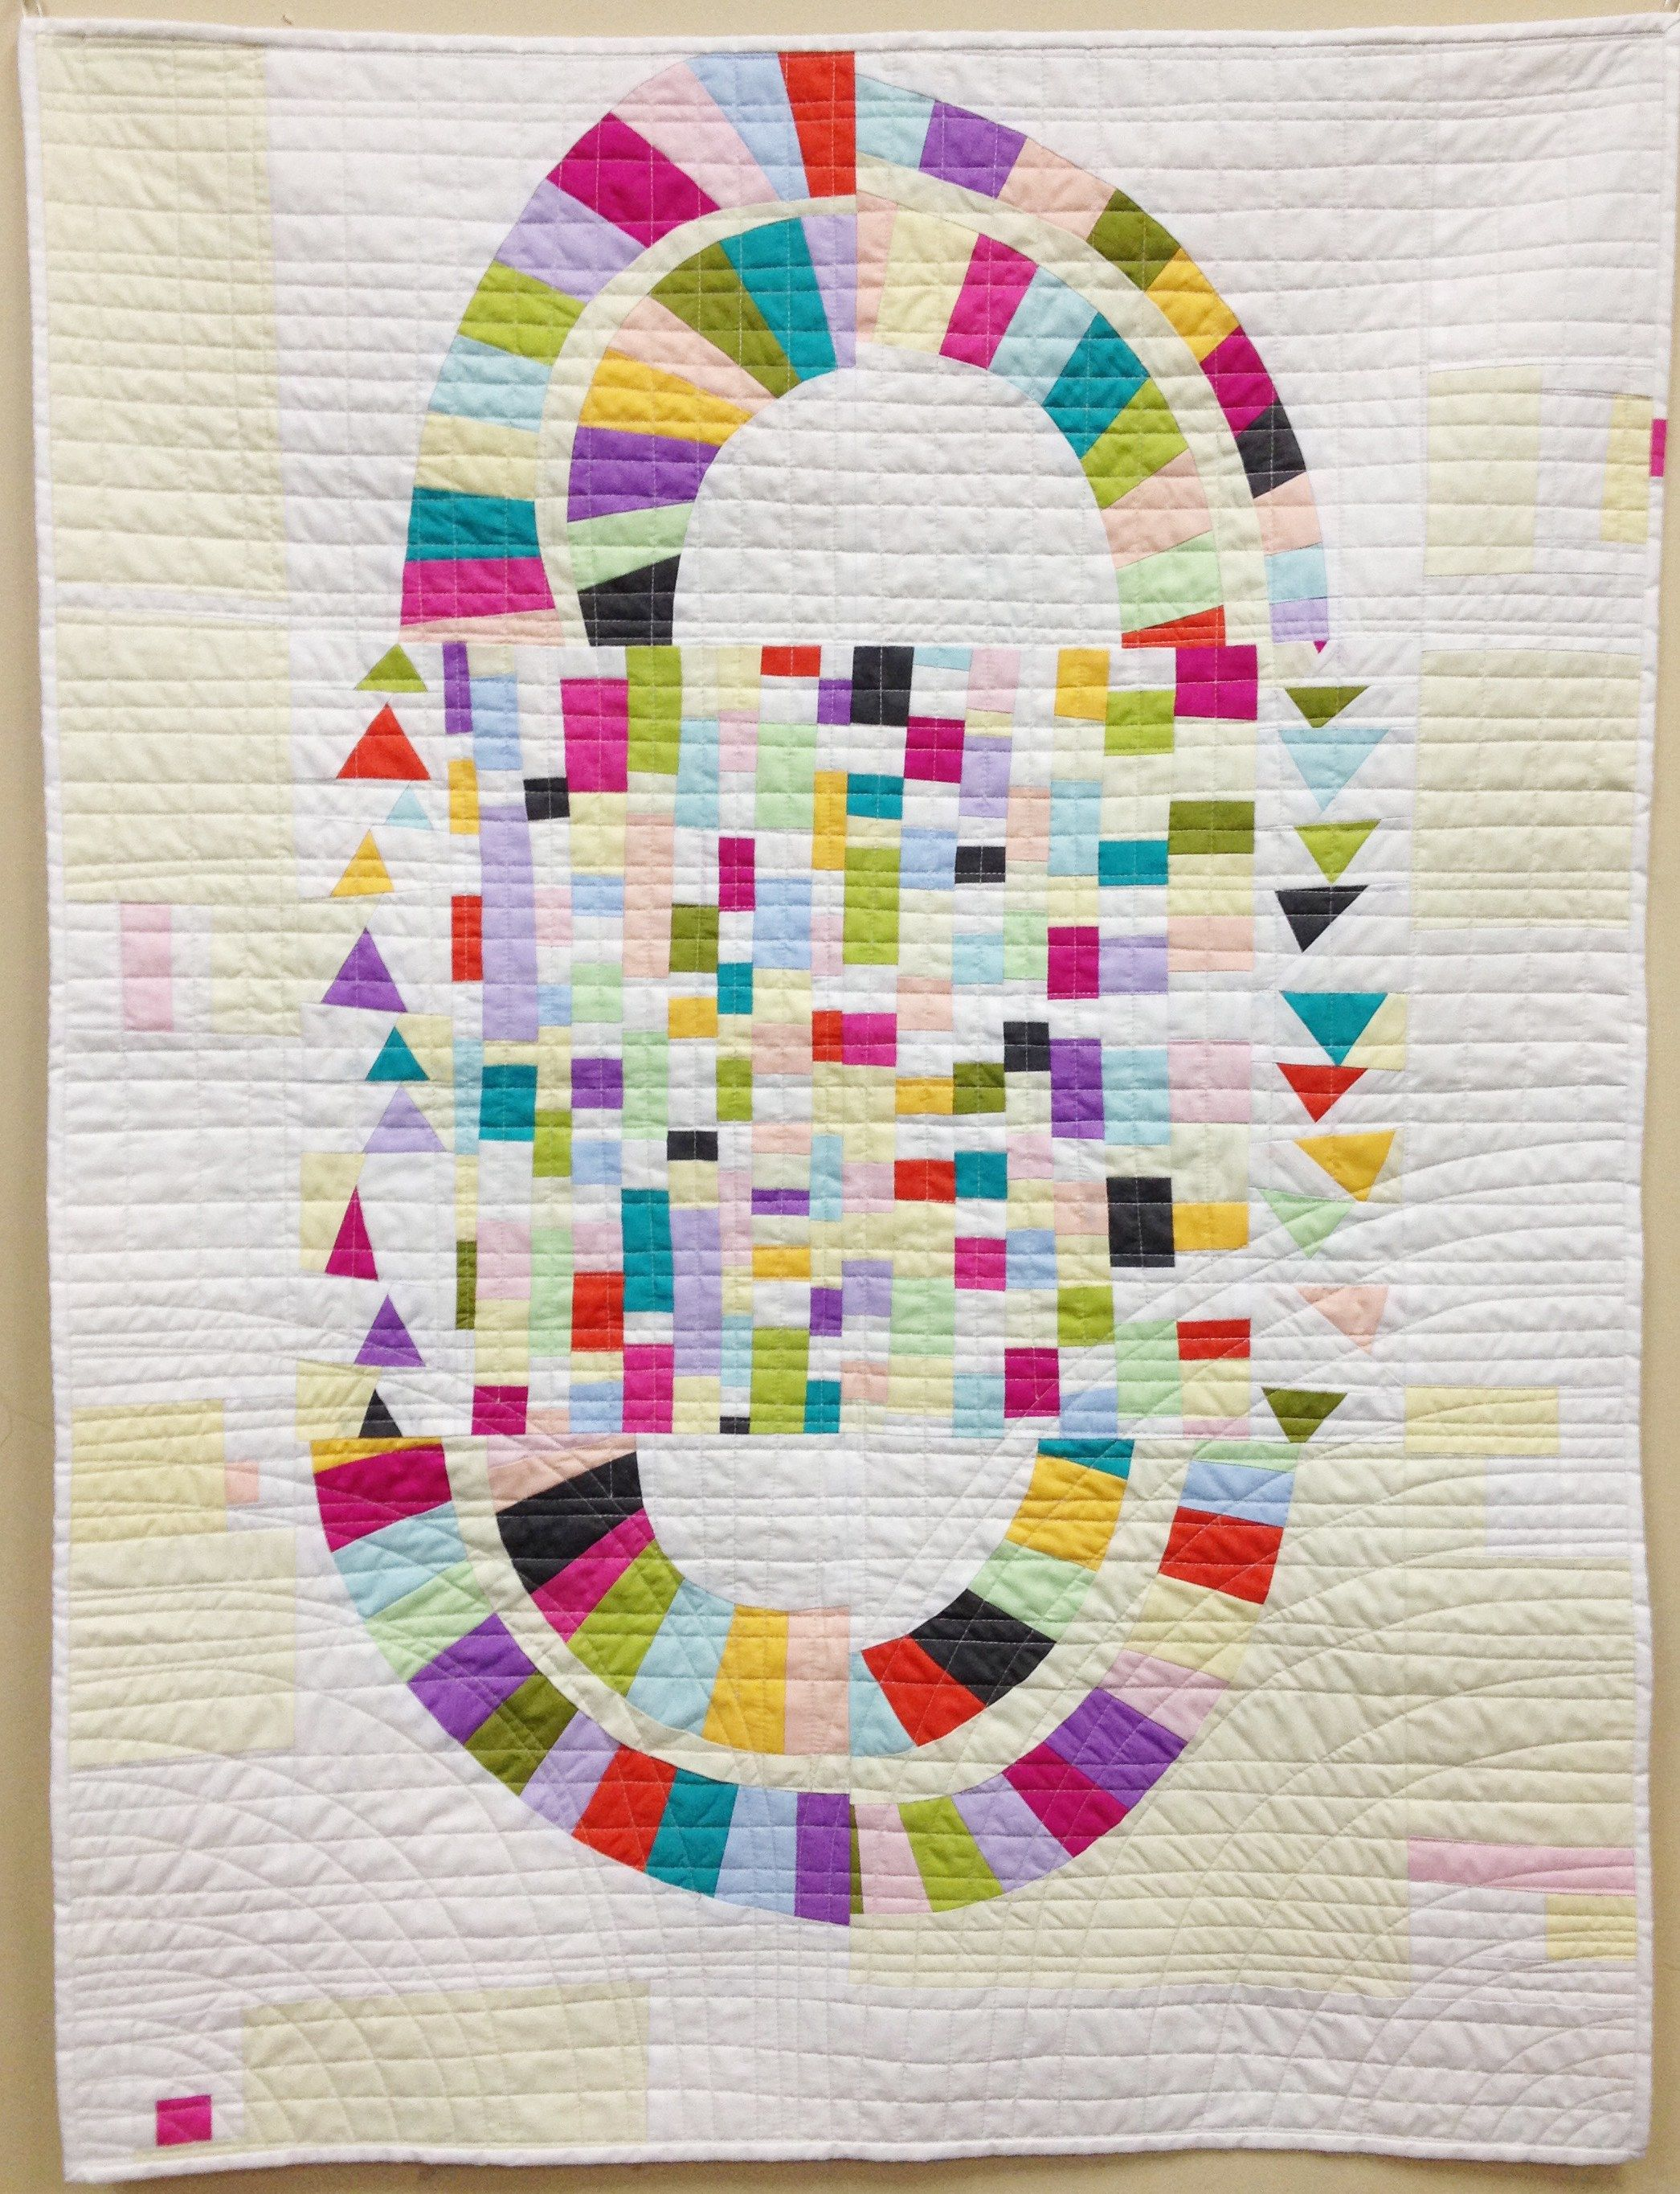 LuckyDay Quilt by Cynthia Frenette